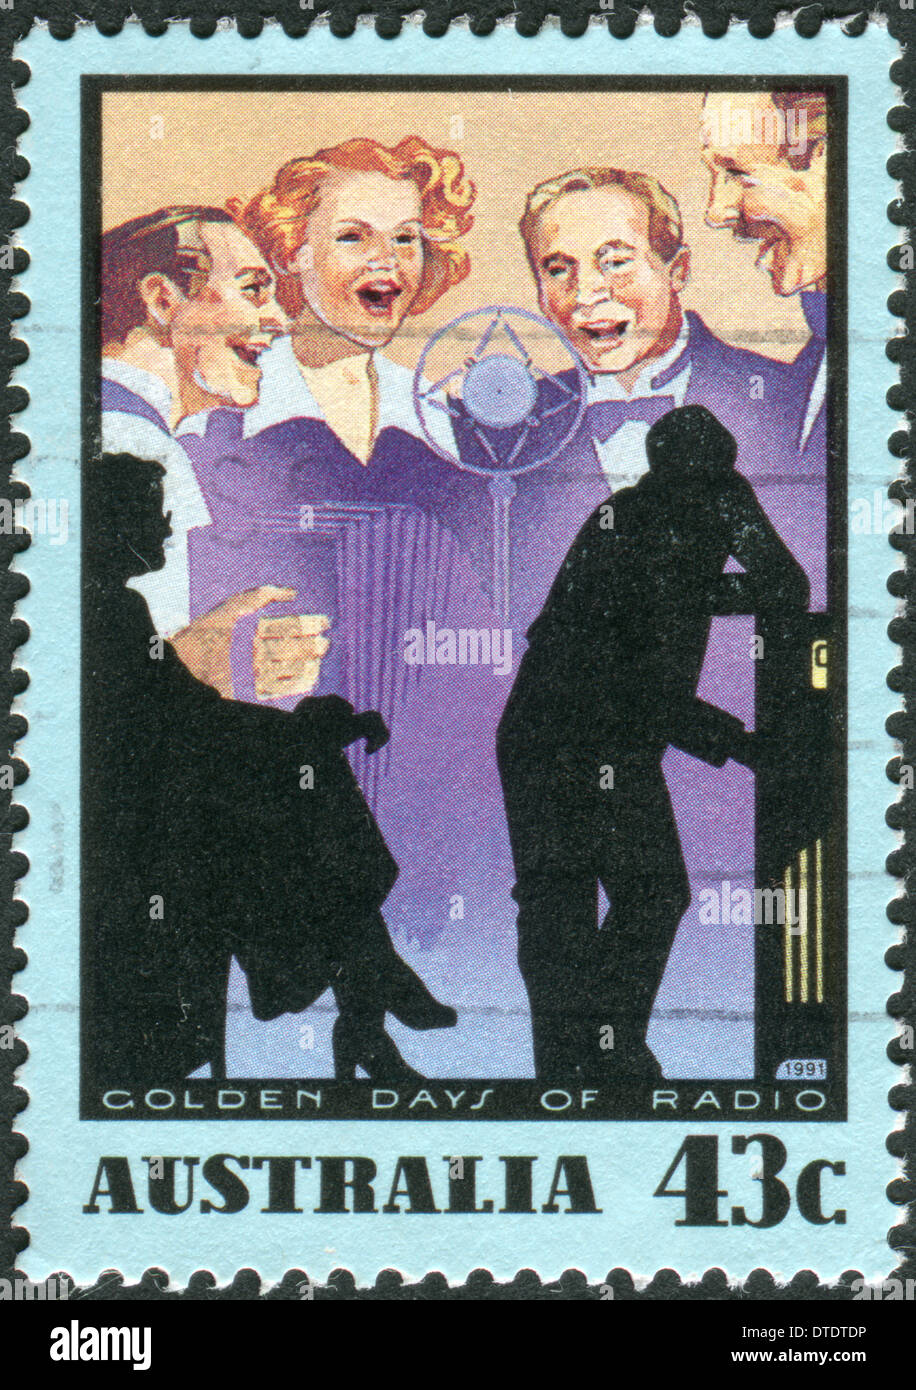 AUSTRALIA - CIRCA 1991: Postage stamp printed in Australia, is dedicated to Golden Days of Radio: Soap operas, circa 1991 - Stock Image